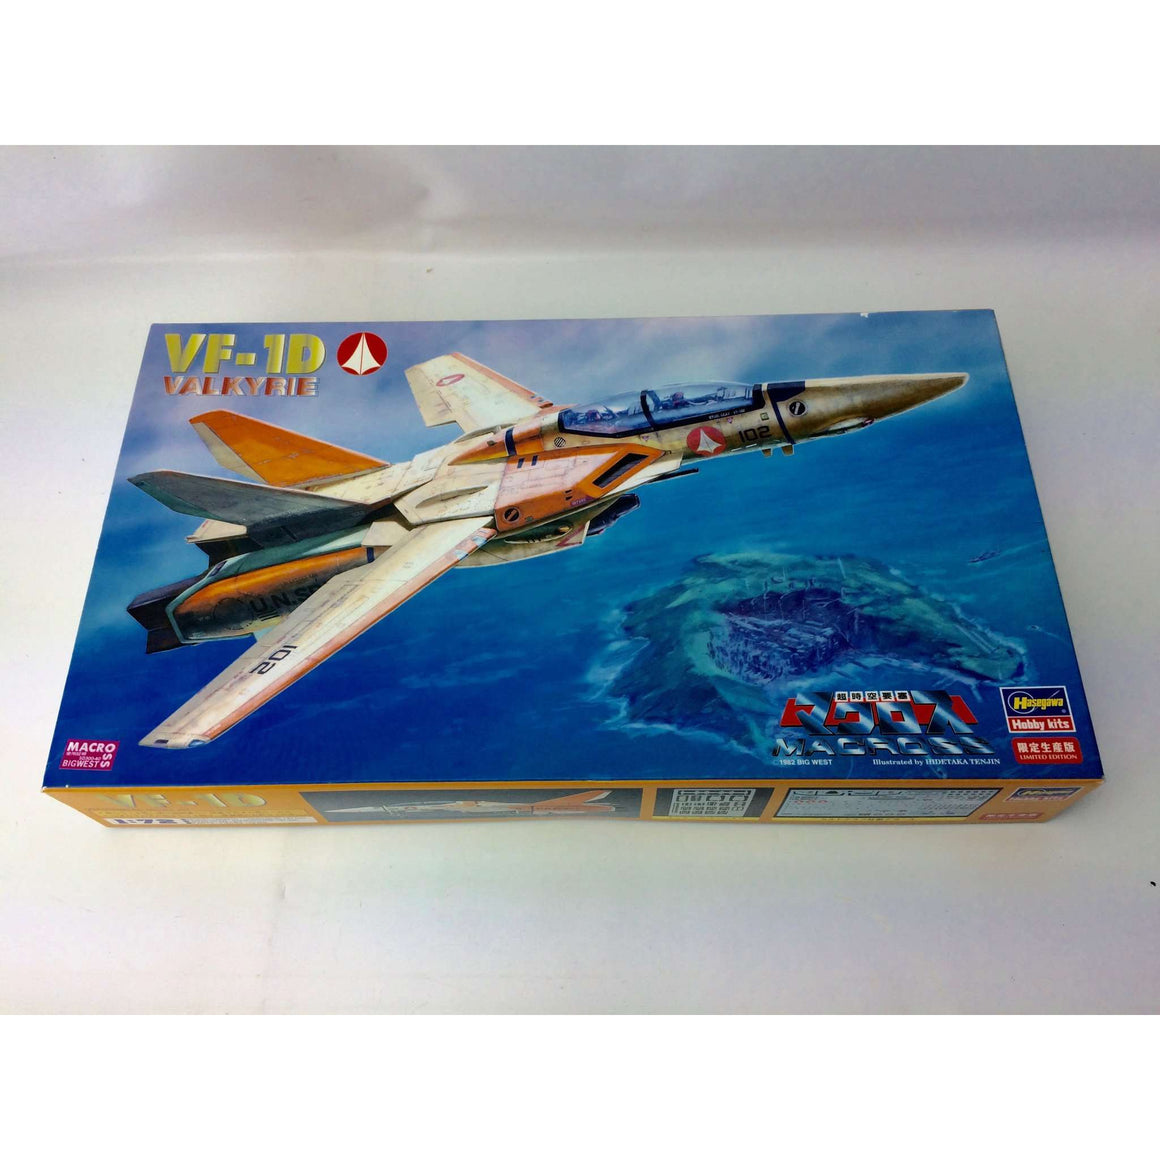 CSTOYS INTERNATIONAL:[BOXED] Macross: VF-1D Valkyrie (Hasegawa Limited Edition) #001